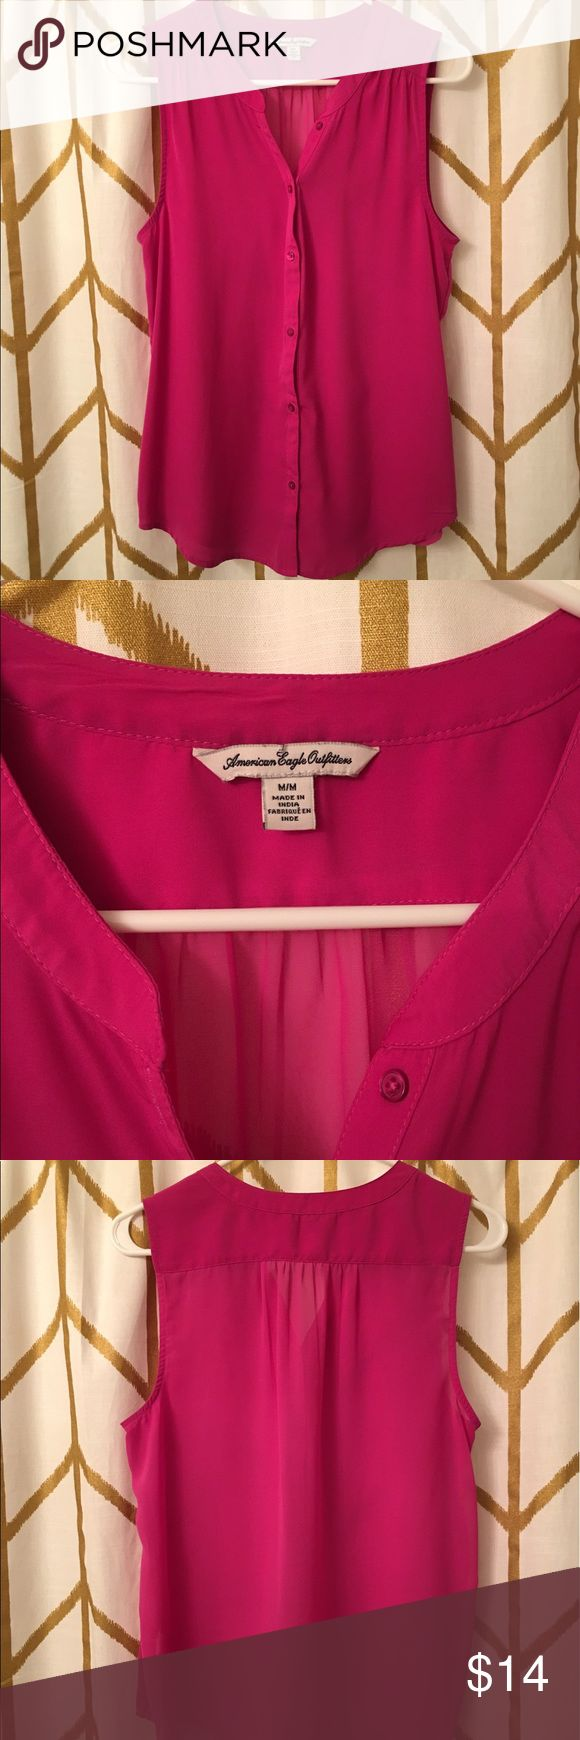 American Eagle Sleeveless Top Beautiful magenta sleeveless top. Can be dressed up or dressed down. Size medium. Looks brand new. American Eagle Outfitters Tops